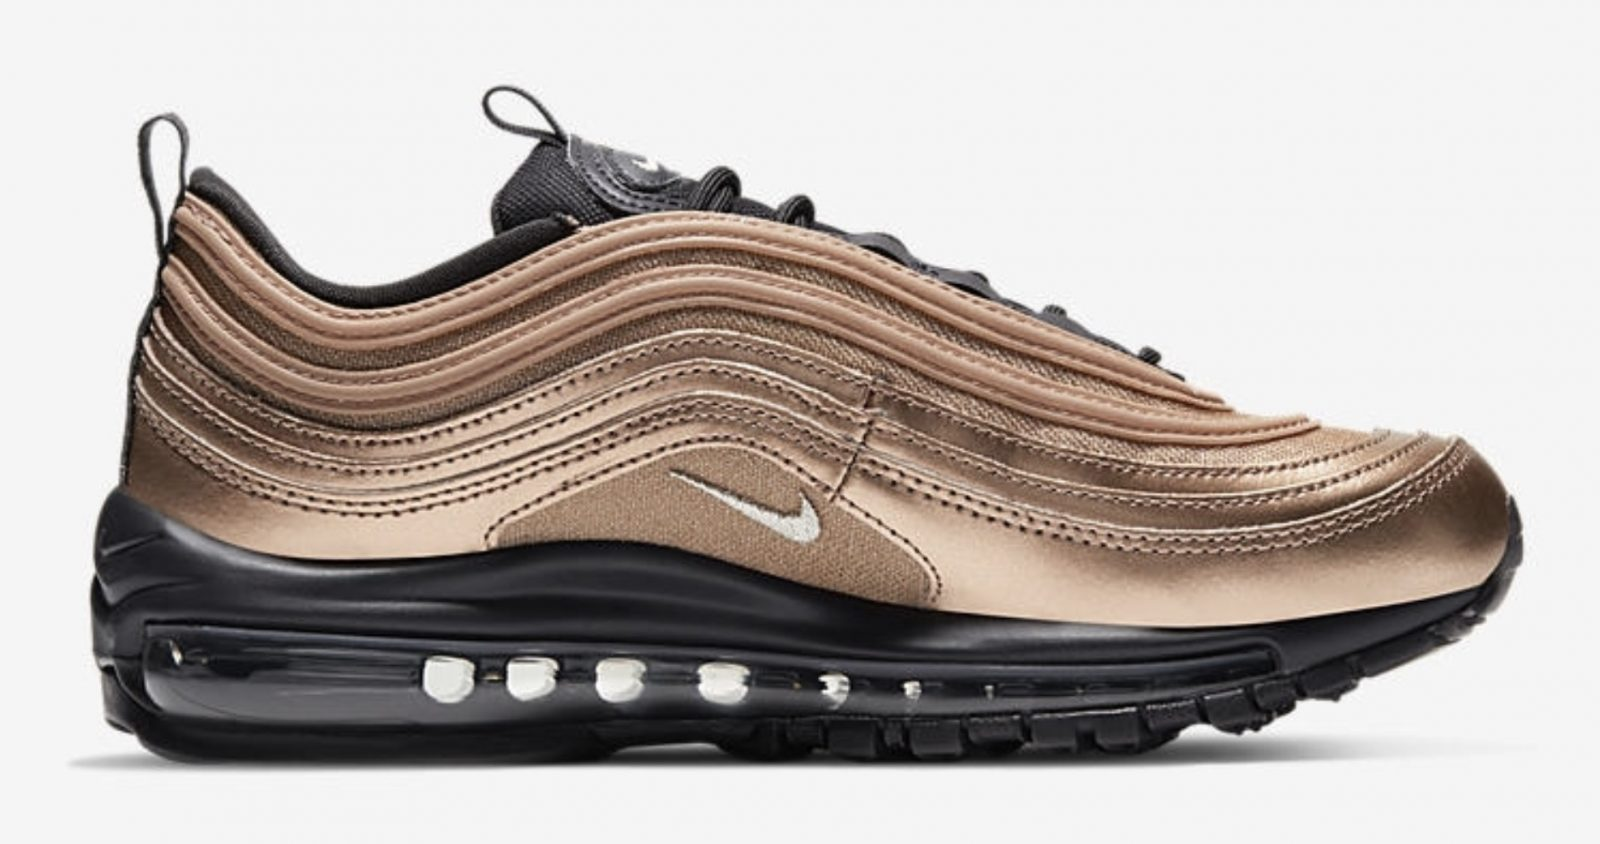 Get Seasonal In The Latest Nike Air Max 97 Metallic Gold side 1